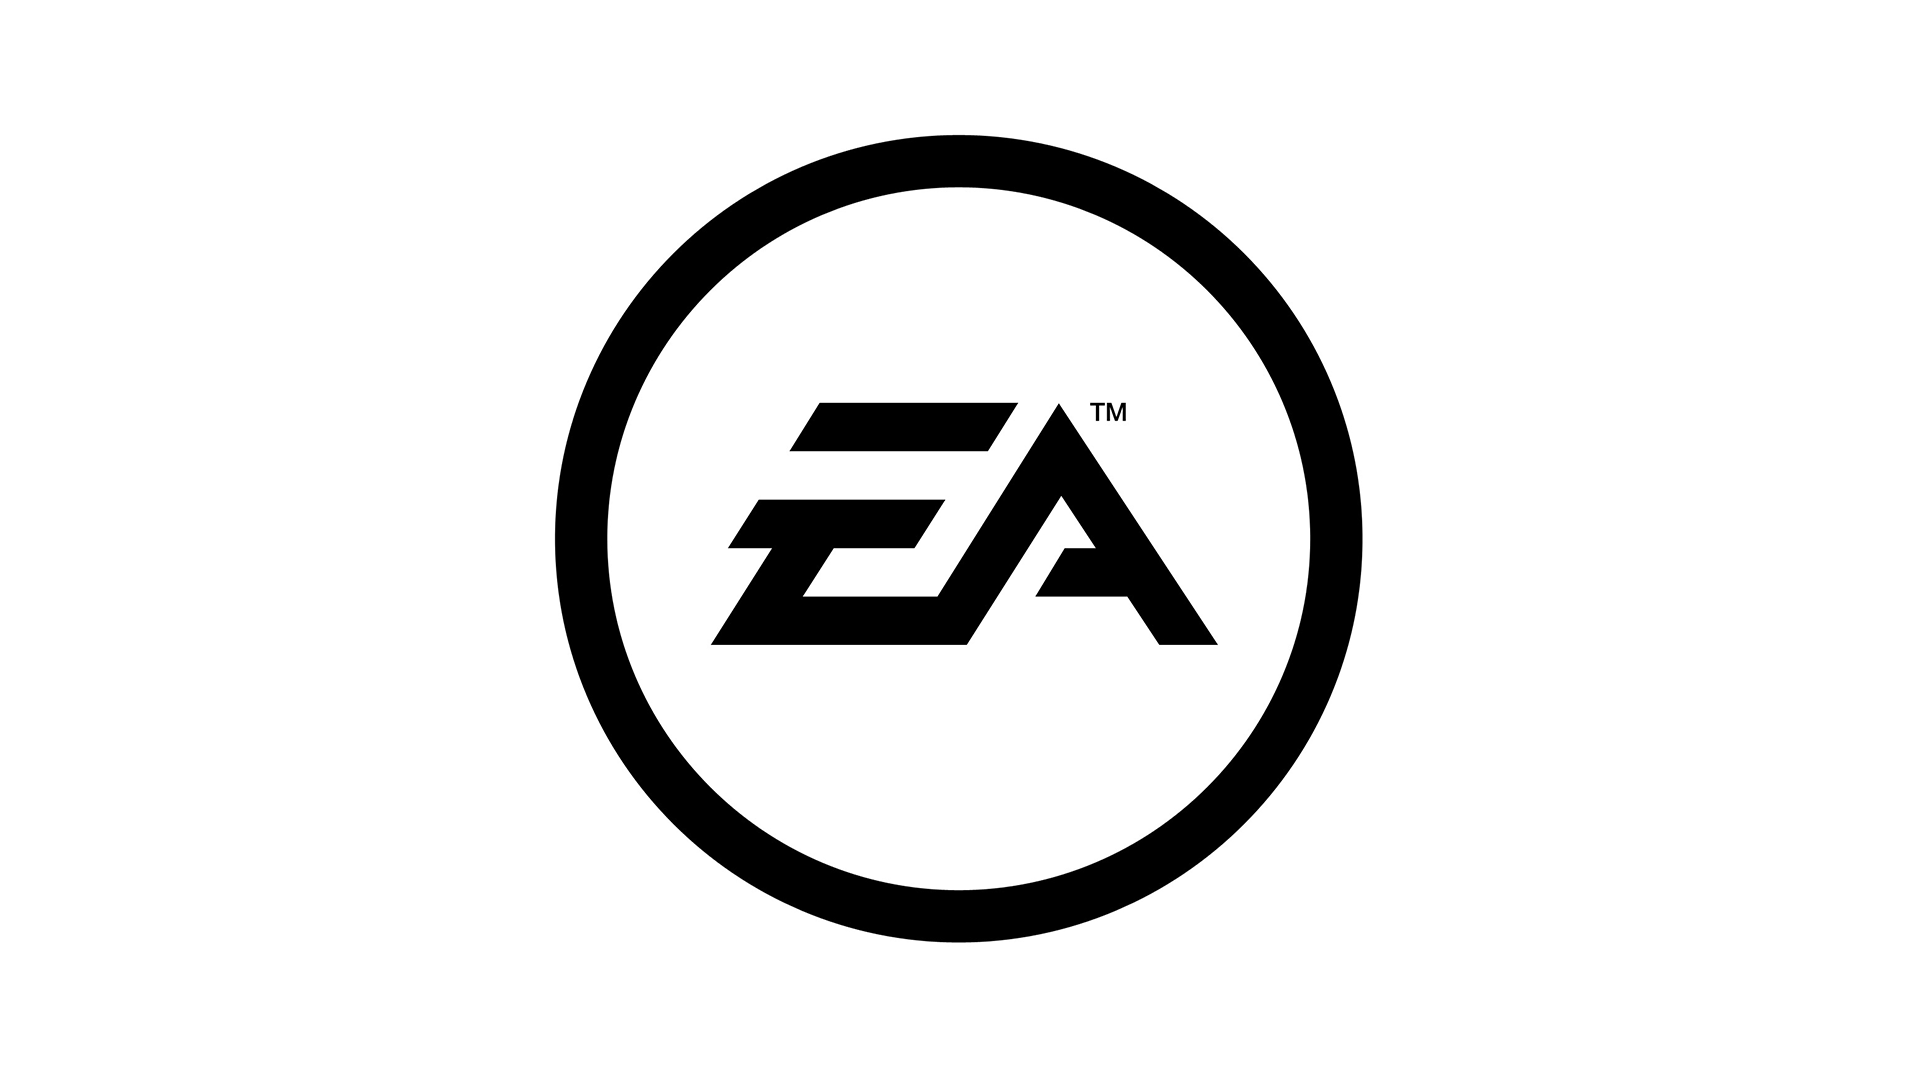 Patrick Sderlund Is Leaving Ea After 8 Years As A Leading Exec Pushtomake Switch Electronic Symbol Pcgamesn